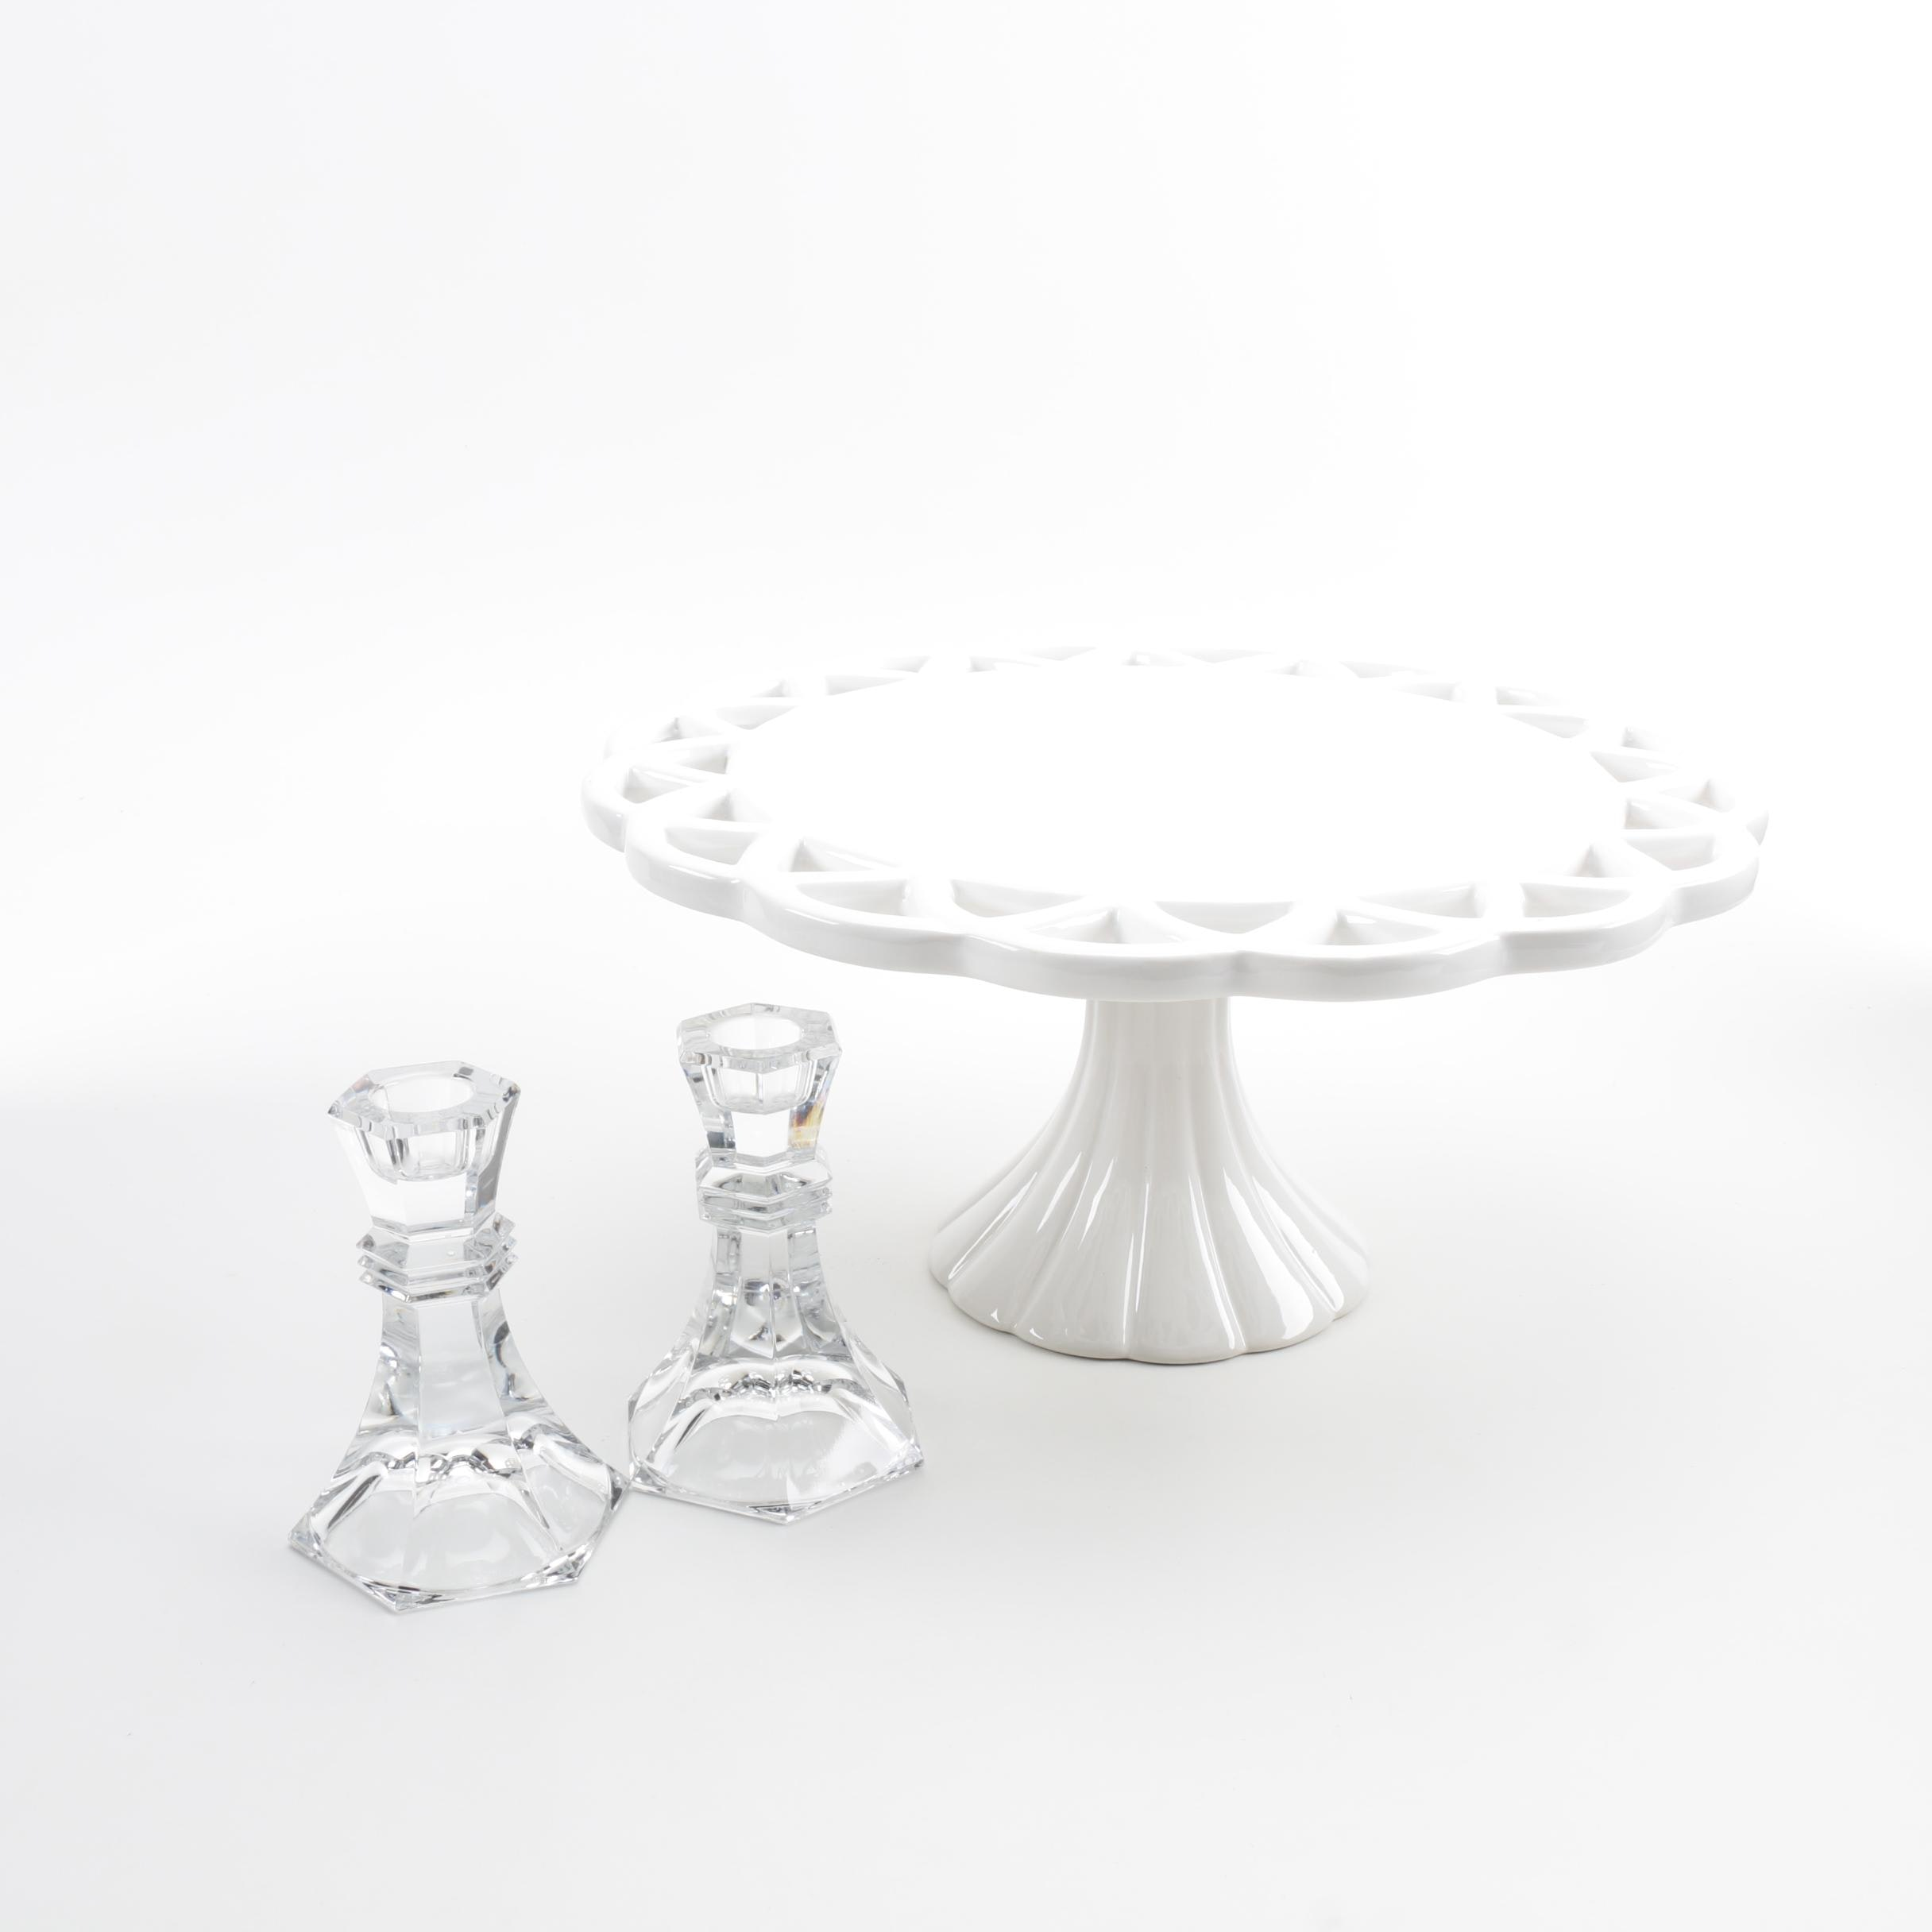 Cake Plate and Crystal Candlestick Holders